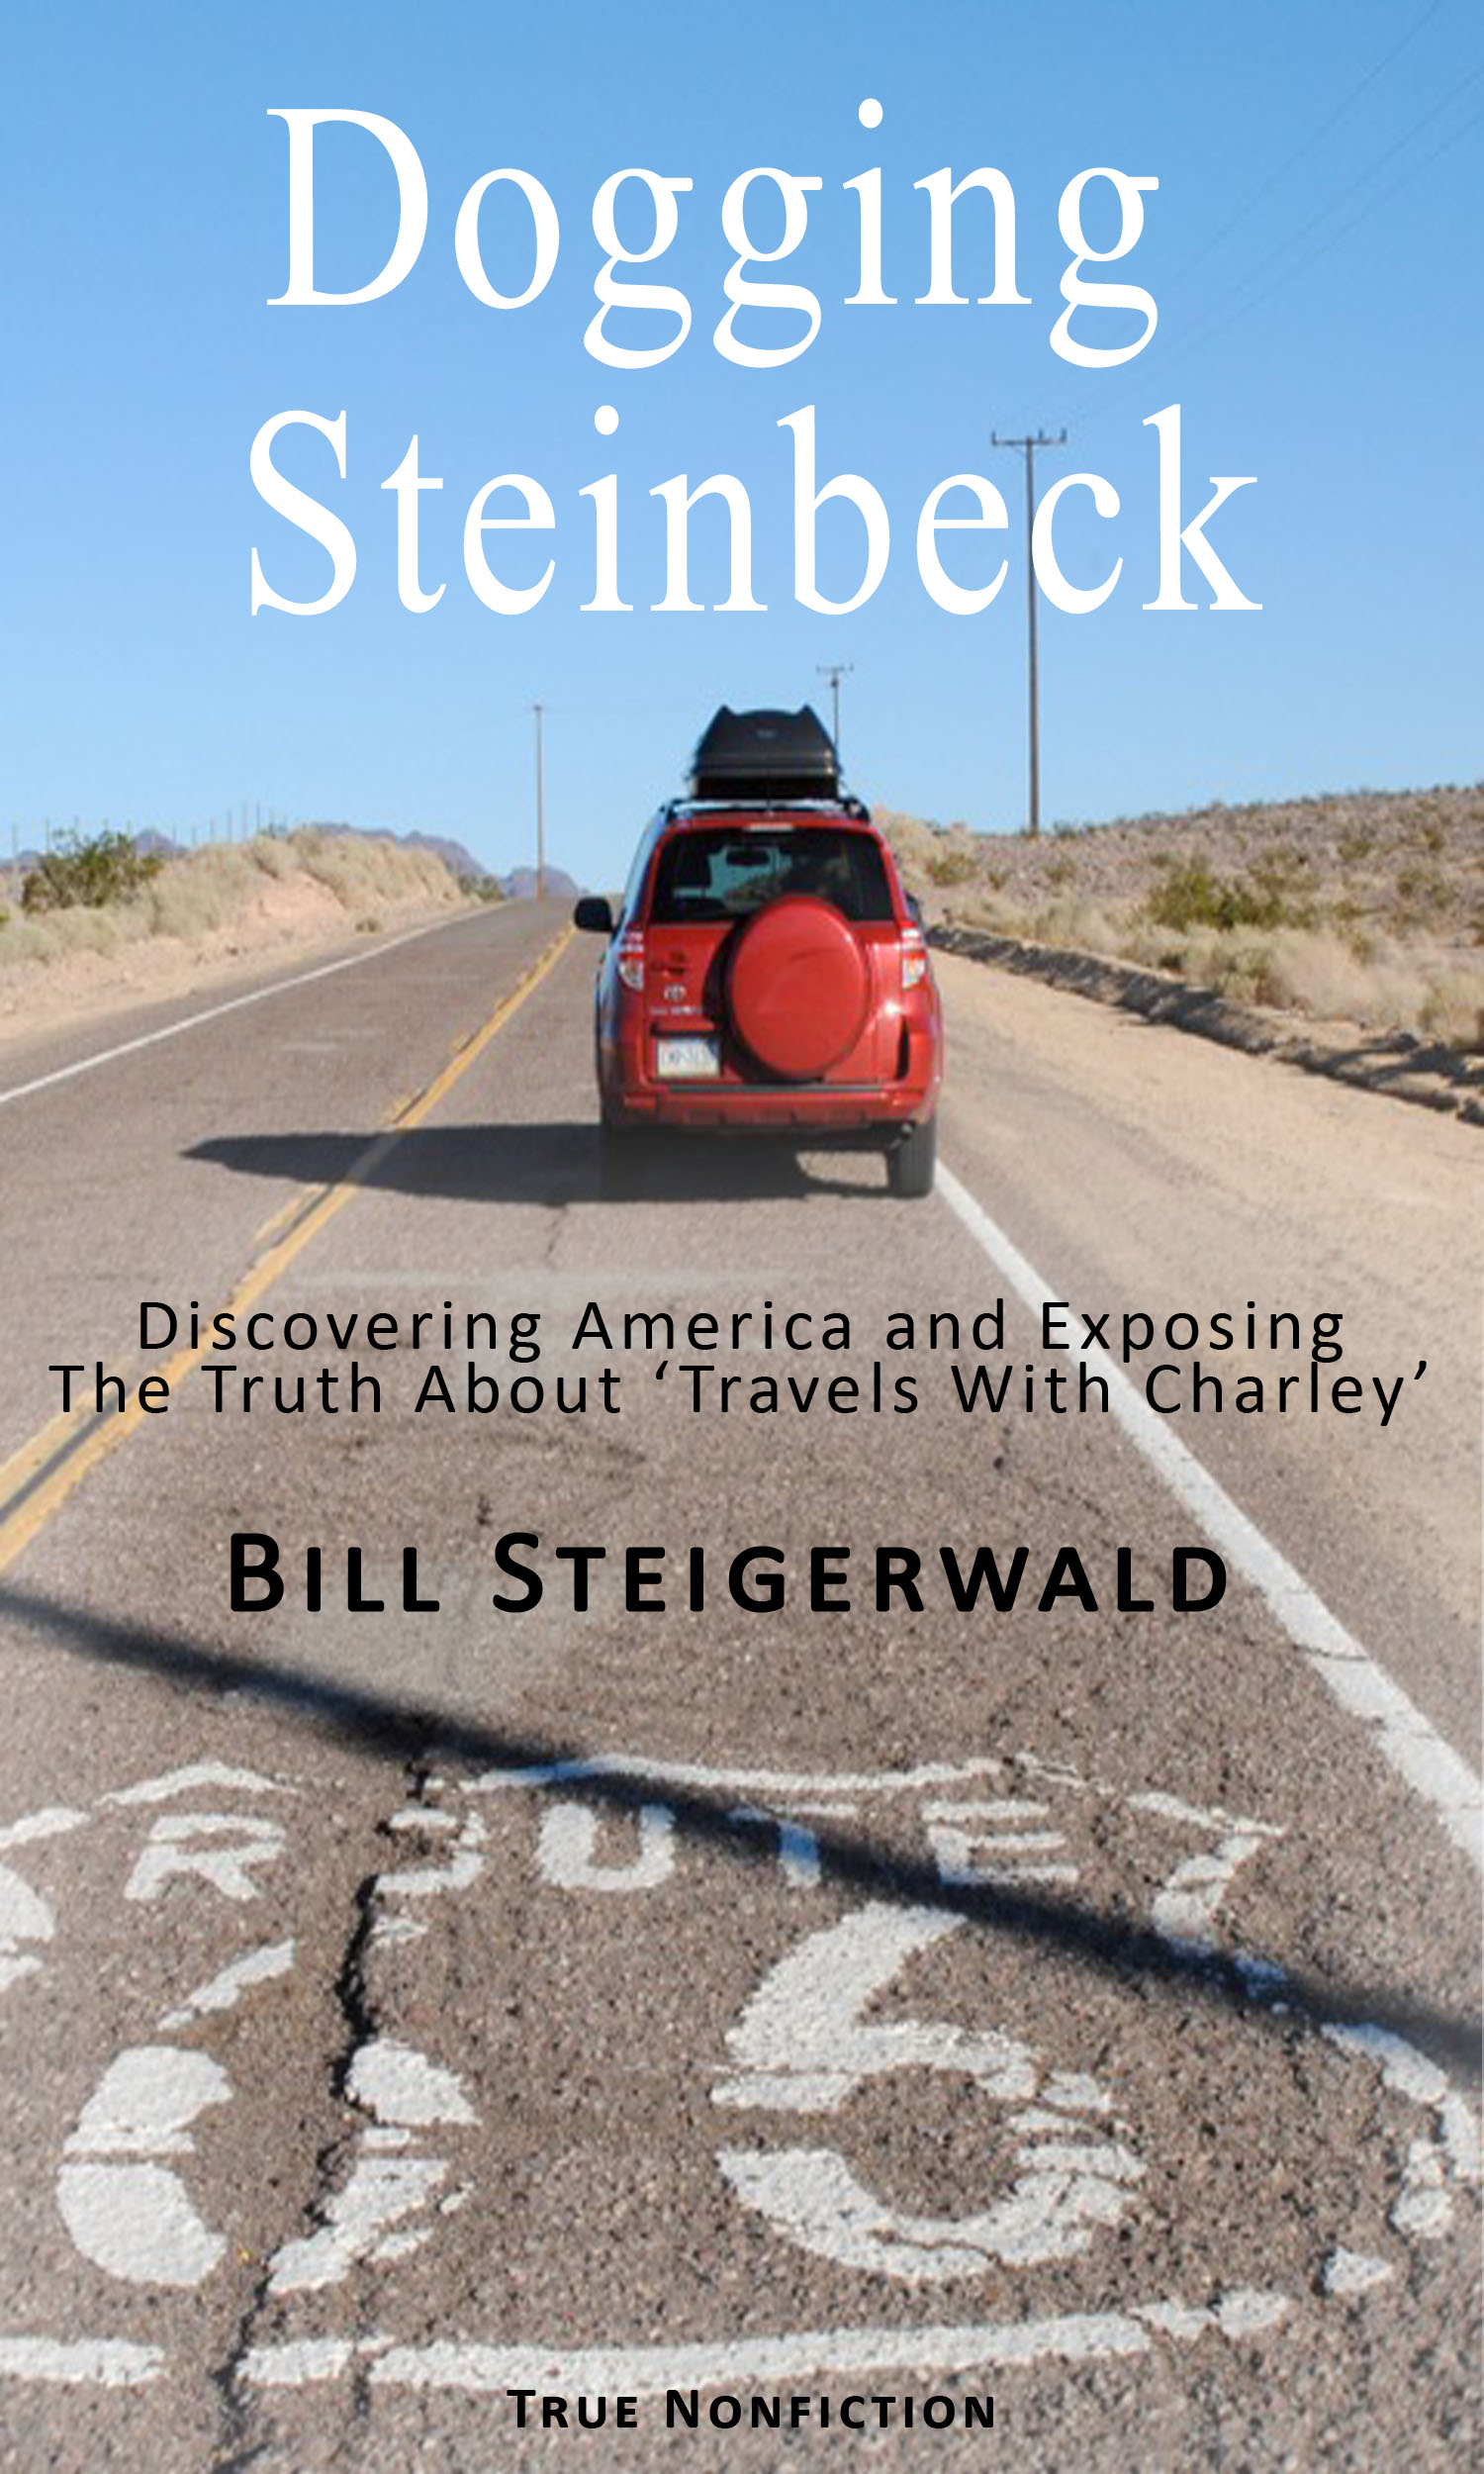 travels with charley essay How to write a thesis statement for travels with charley essay step 1 read the prompt- identify and fully explain a social issue that steinbeck writes.